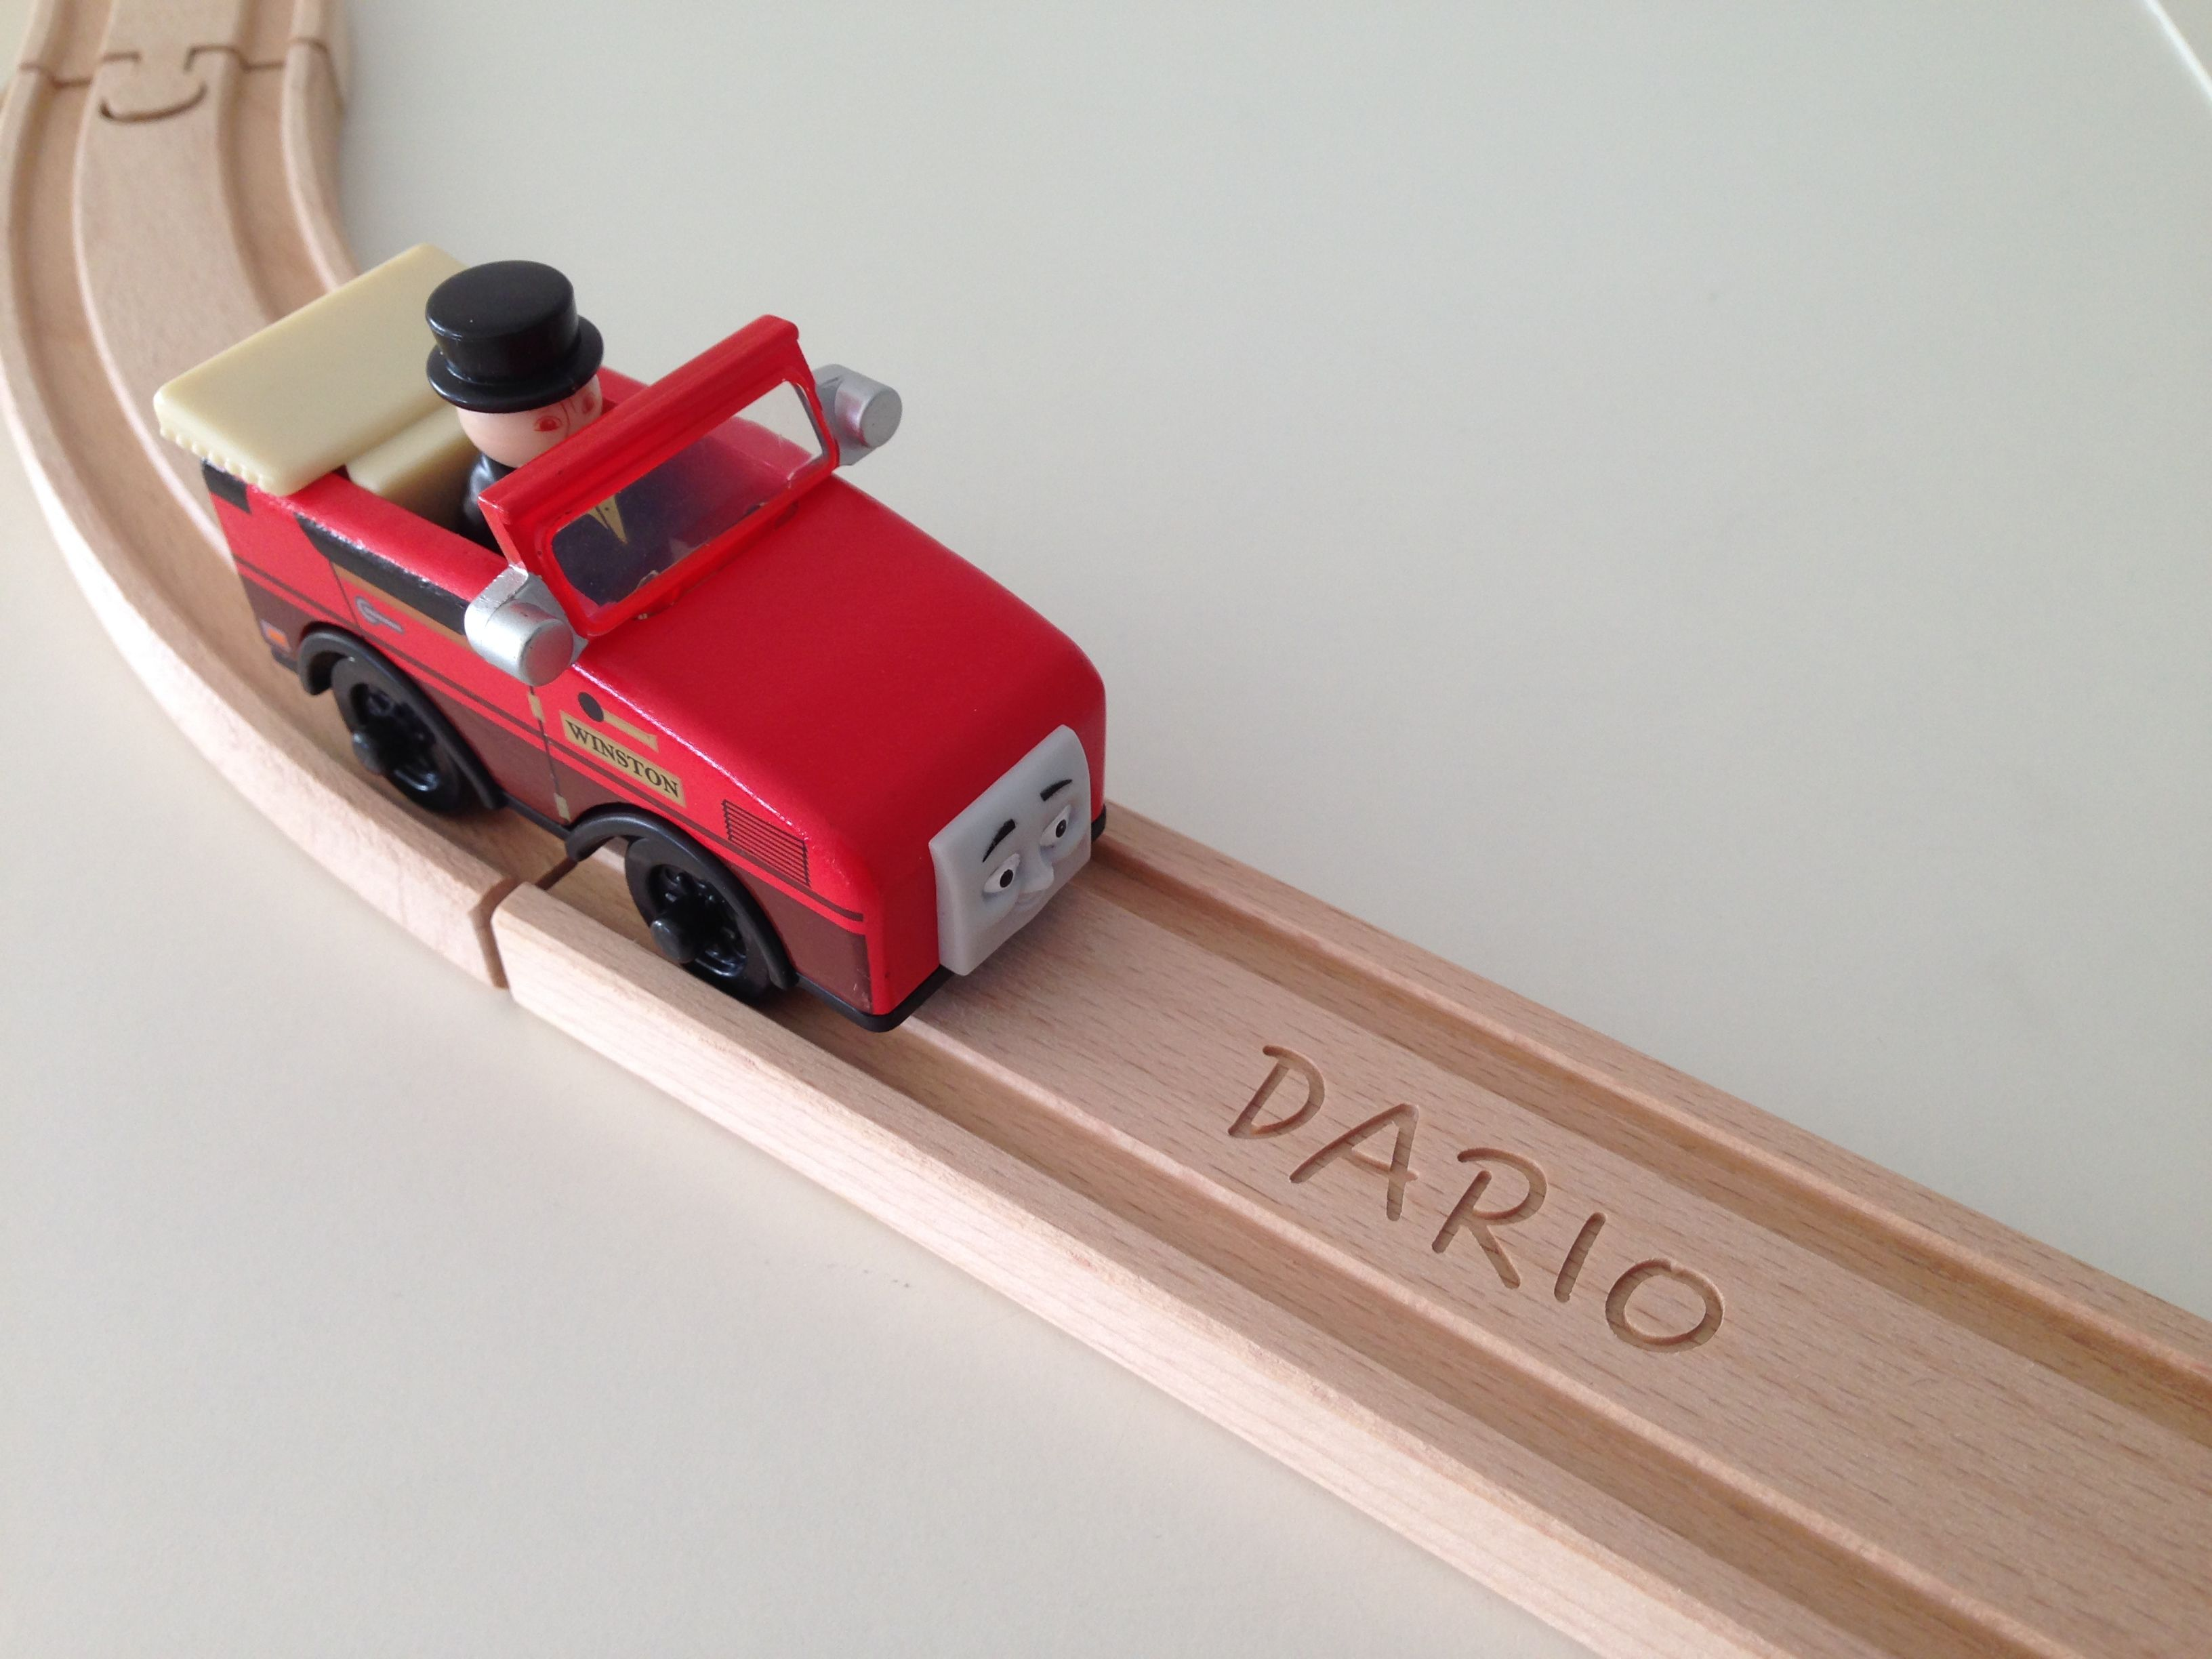 Personalized wooden train track from woodpeckers.ch